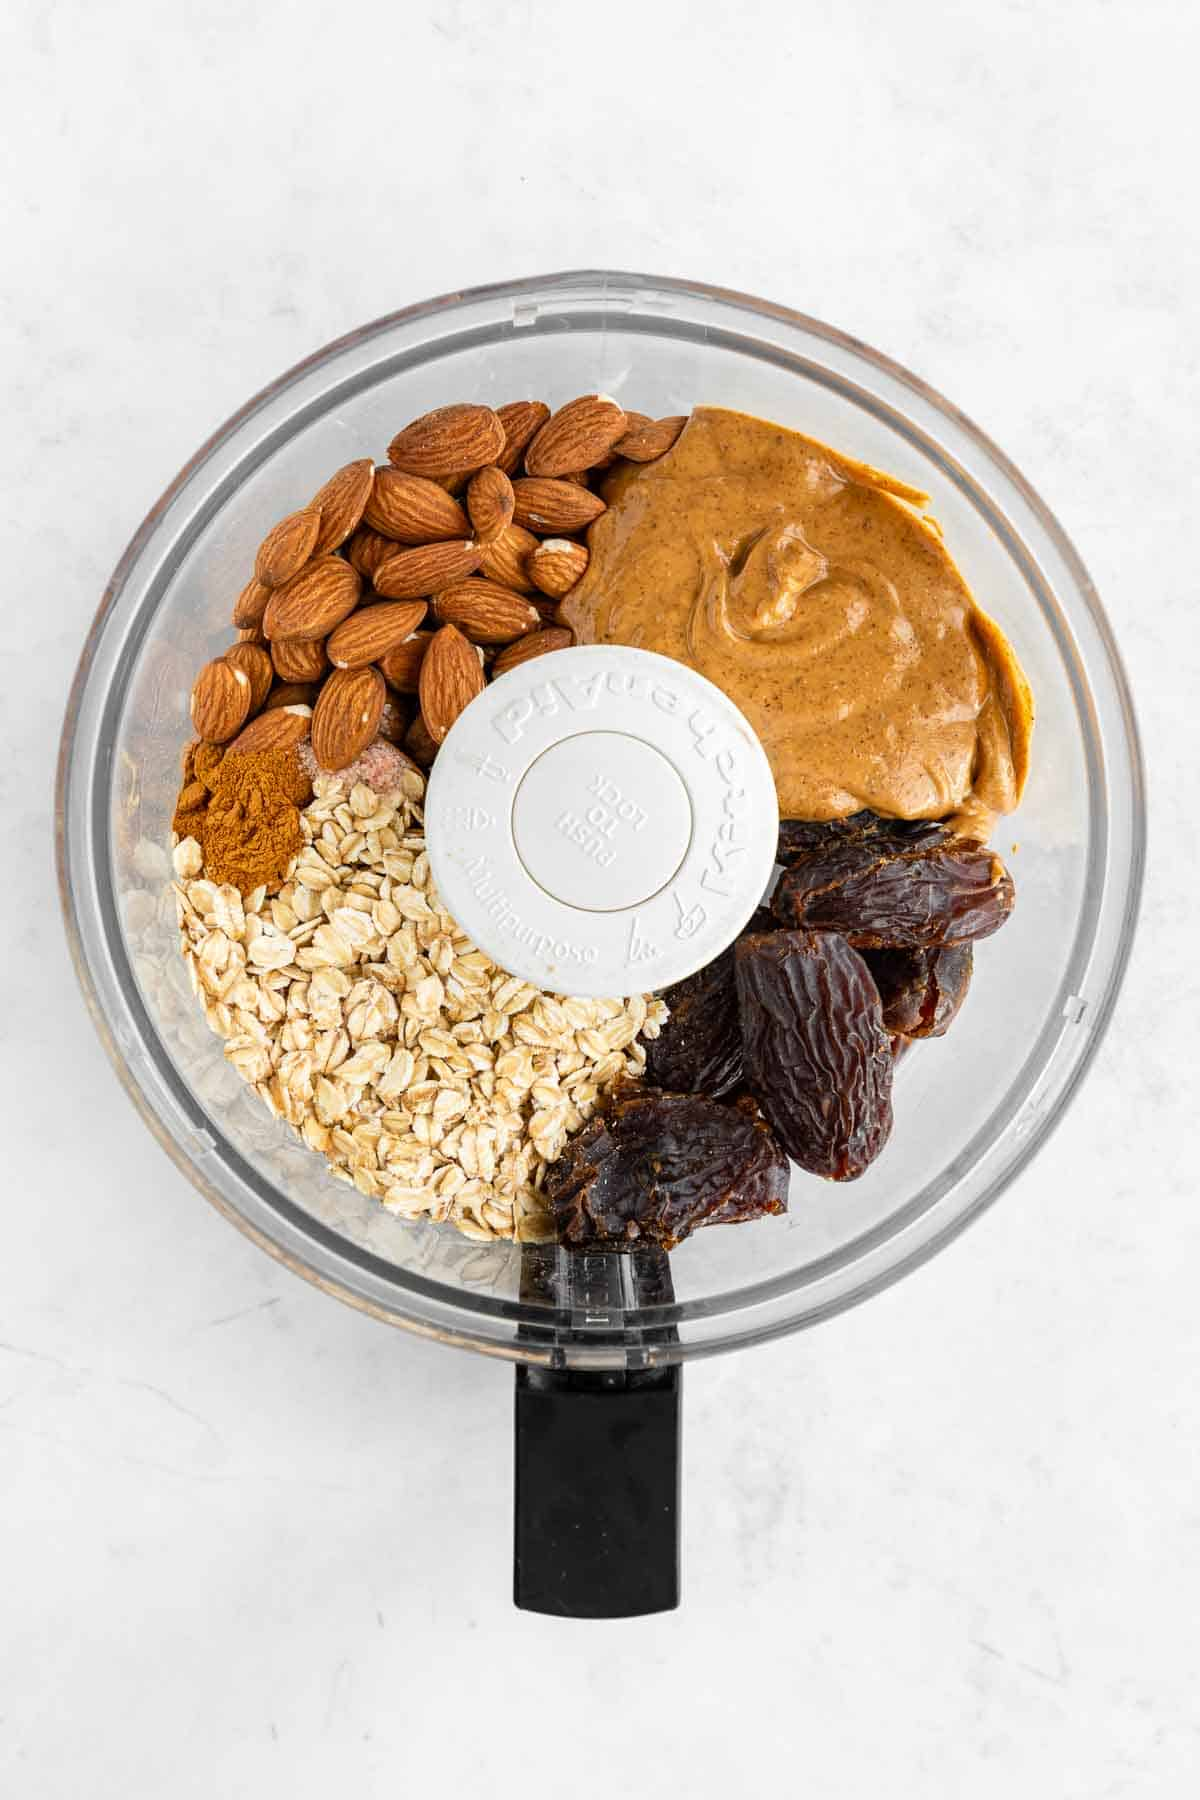 nut butter, dates, oats, and almonds in a food processor